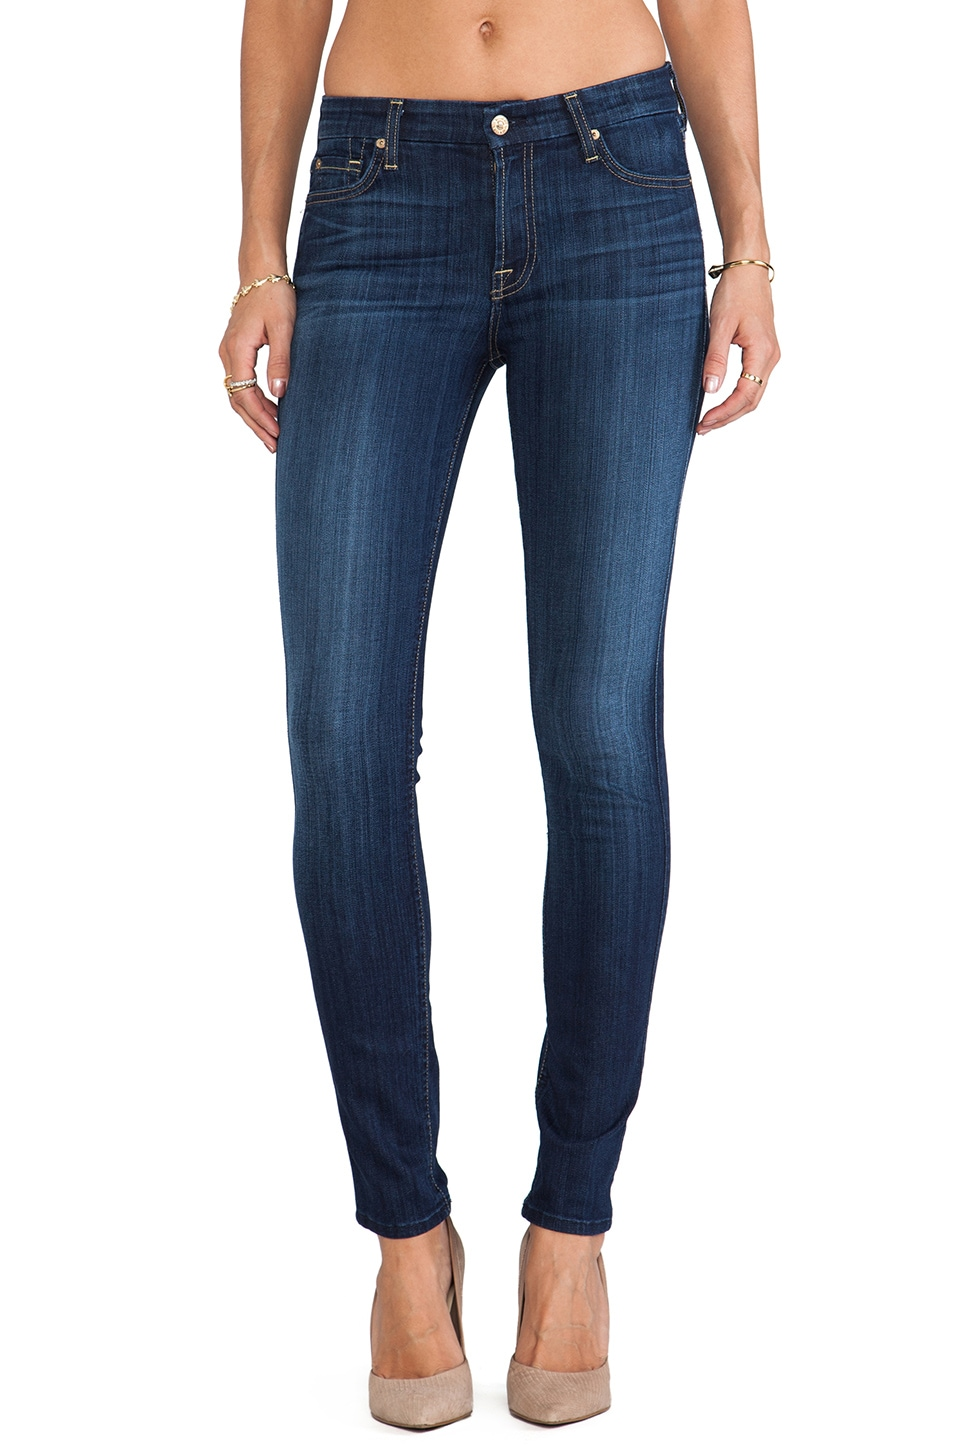 7 For All Mankind The Mid Rise Skinny in Slim Illusion Malibu Coast